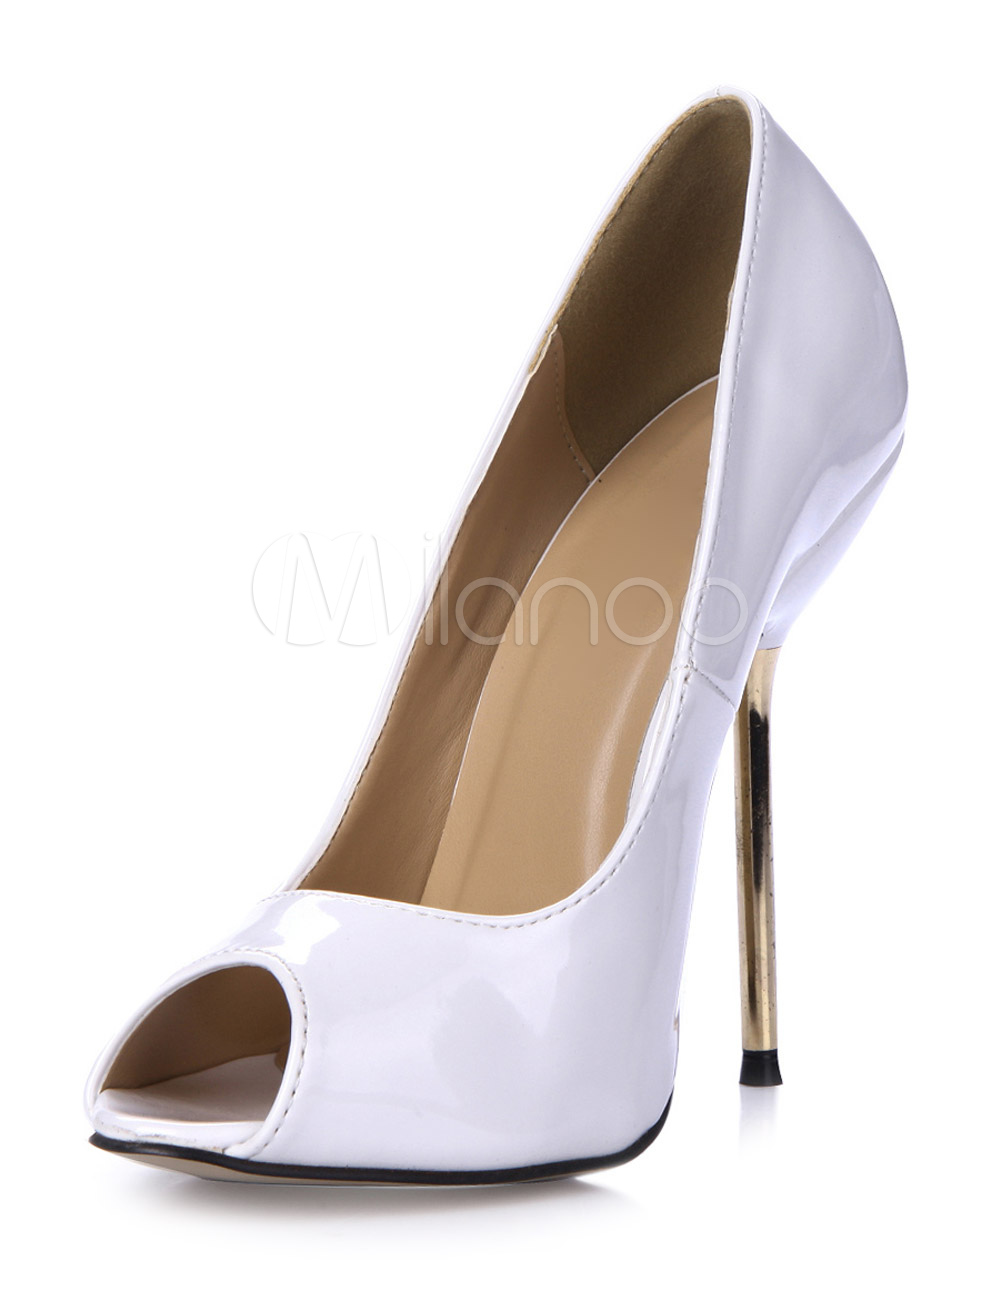 Glamour White Stiletto Heel Patent PU Upper Peep Toe Shoes